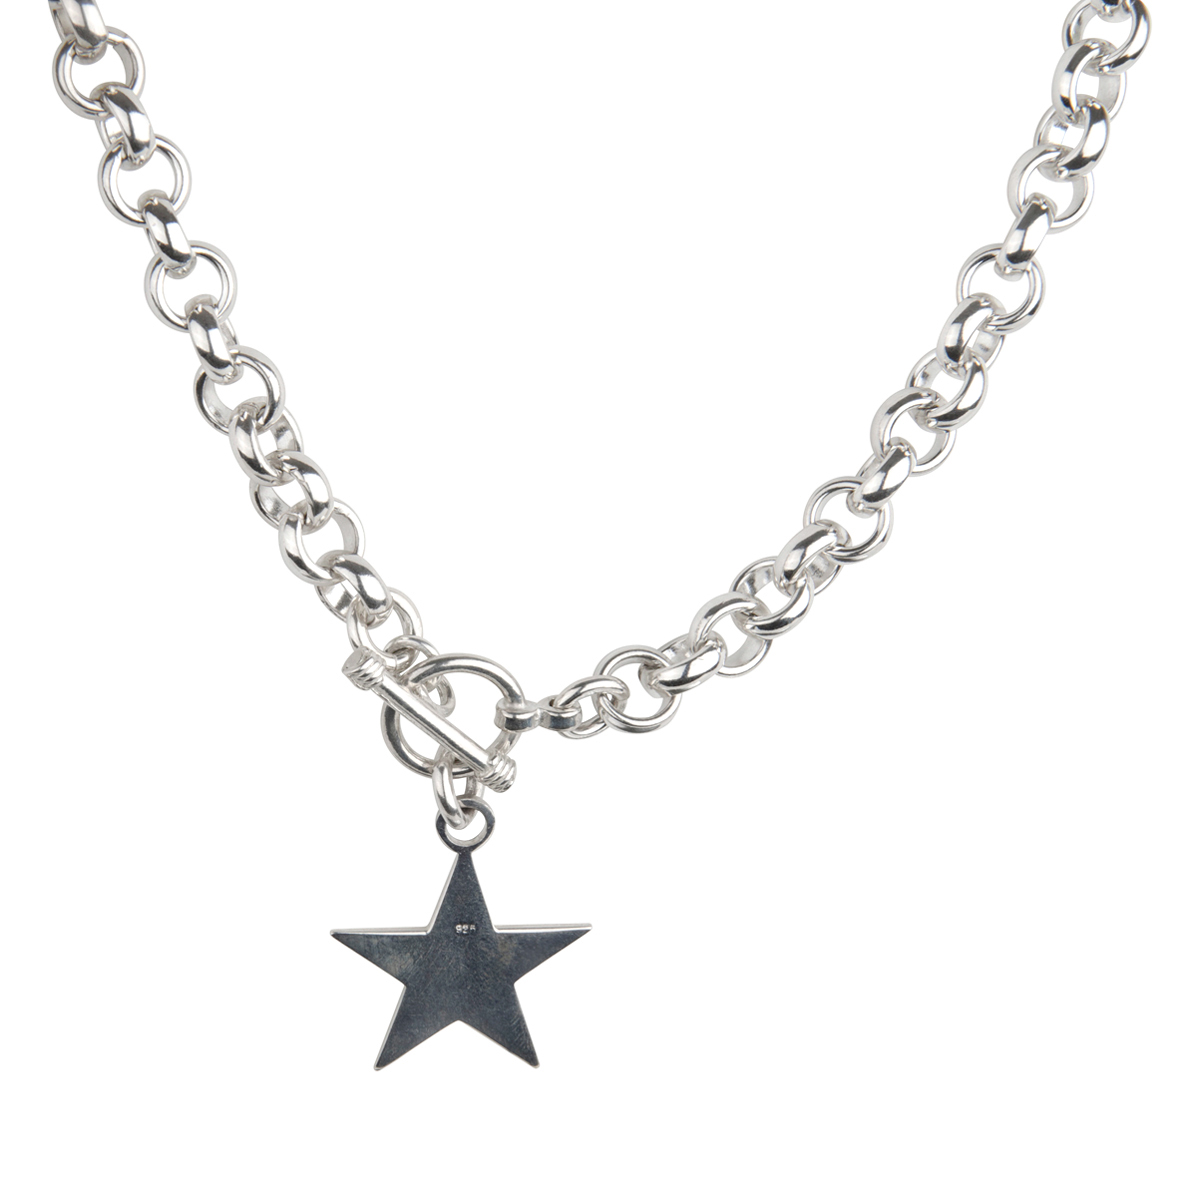 tag toggle sterling silver necklace 18 inches